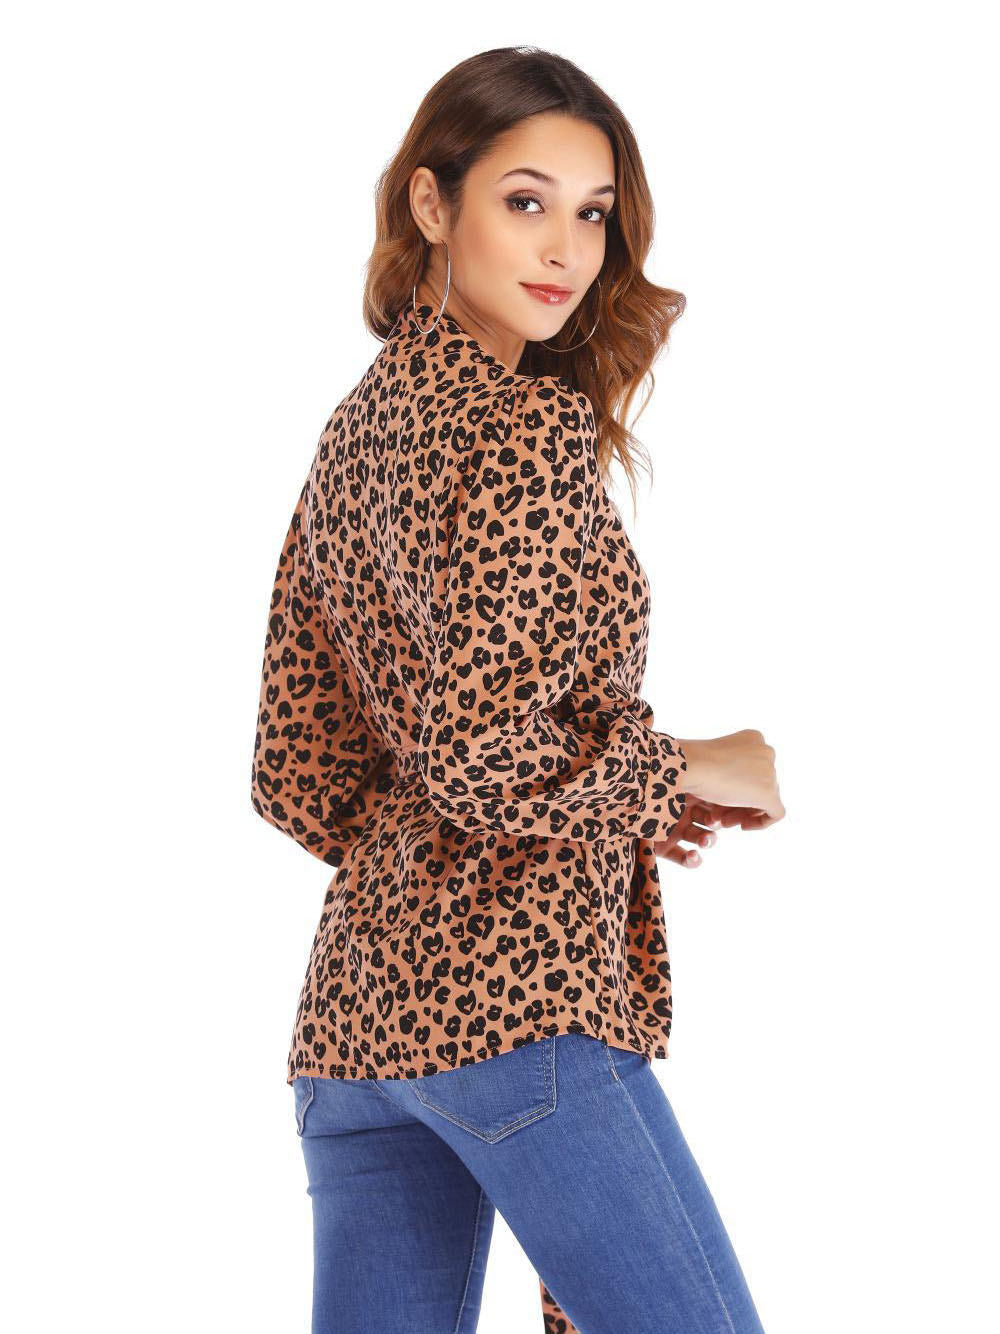 Women's Tops Fashion Lace V-neck Leopard Shirt Women